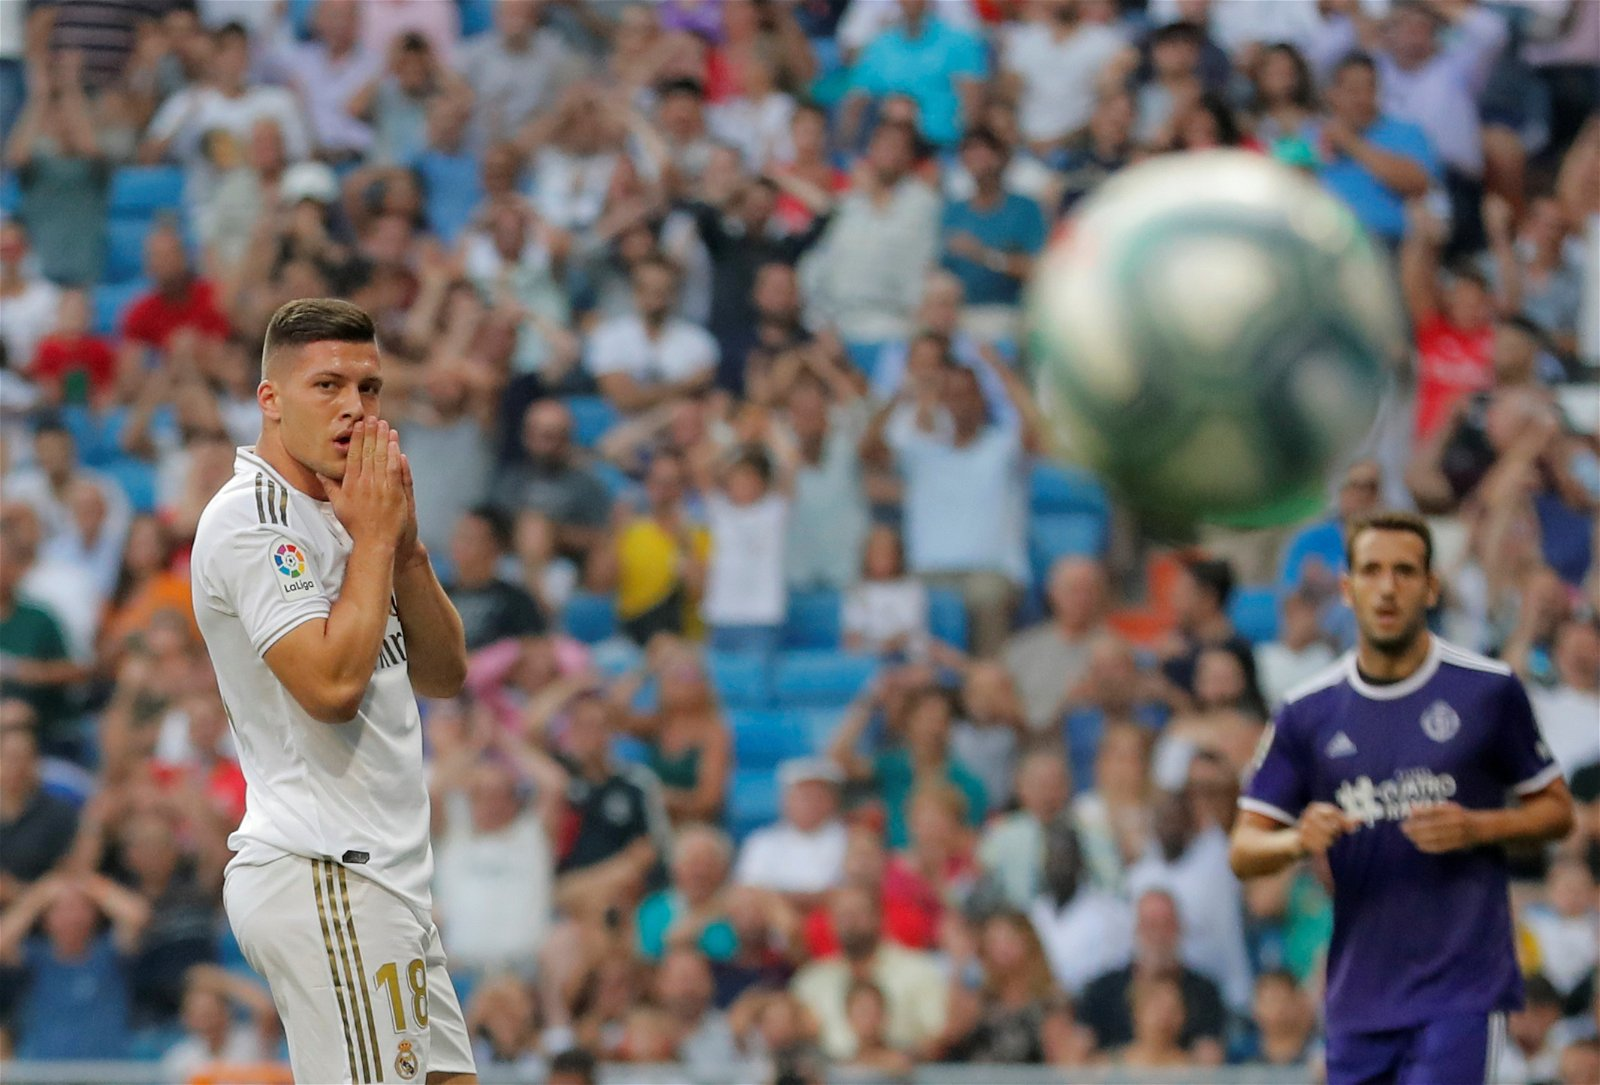 2019 08 24T183102Z 2051986691 RC1539863000 RTRMADP 3 SOCCER SPAIN MAD REV REPORT - Goals, tactical flexibility: New recruit has what it takes to be a hit at Real Madrid - opinion